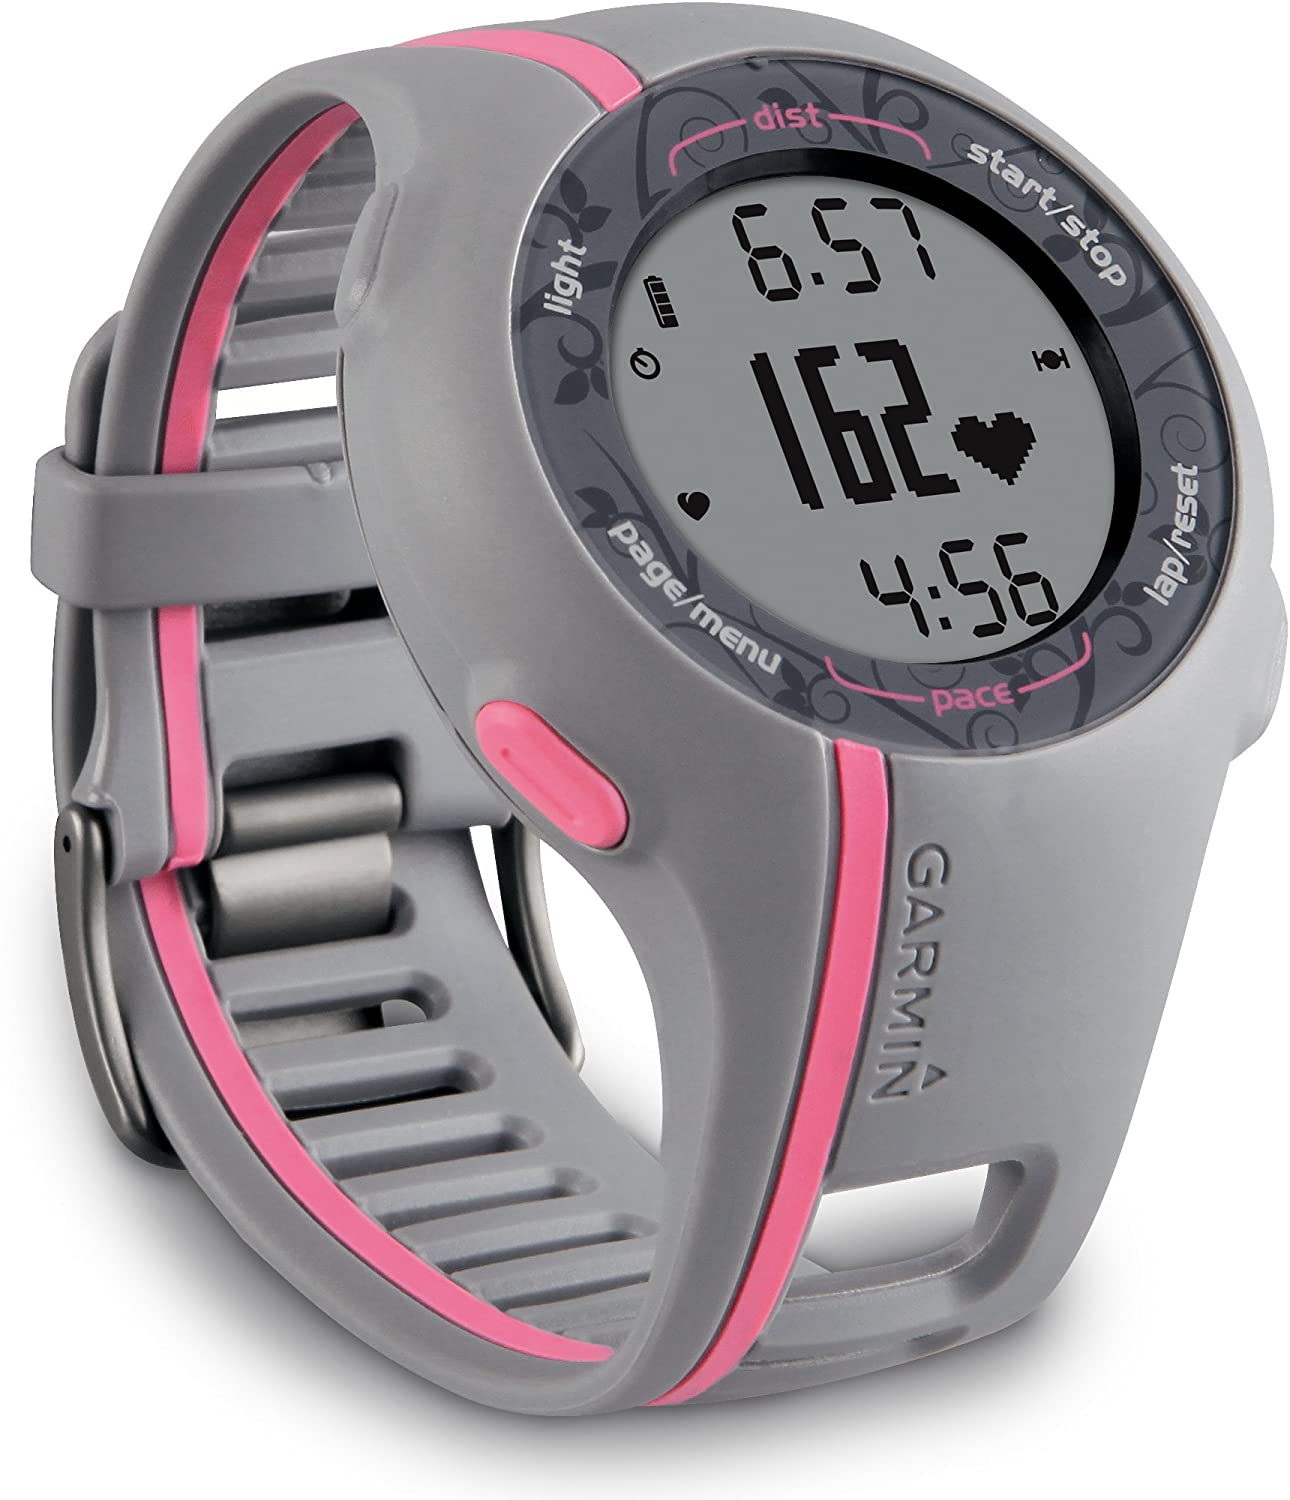 monitor unisex heart forerunner rate watches watch gps pin garmin